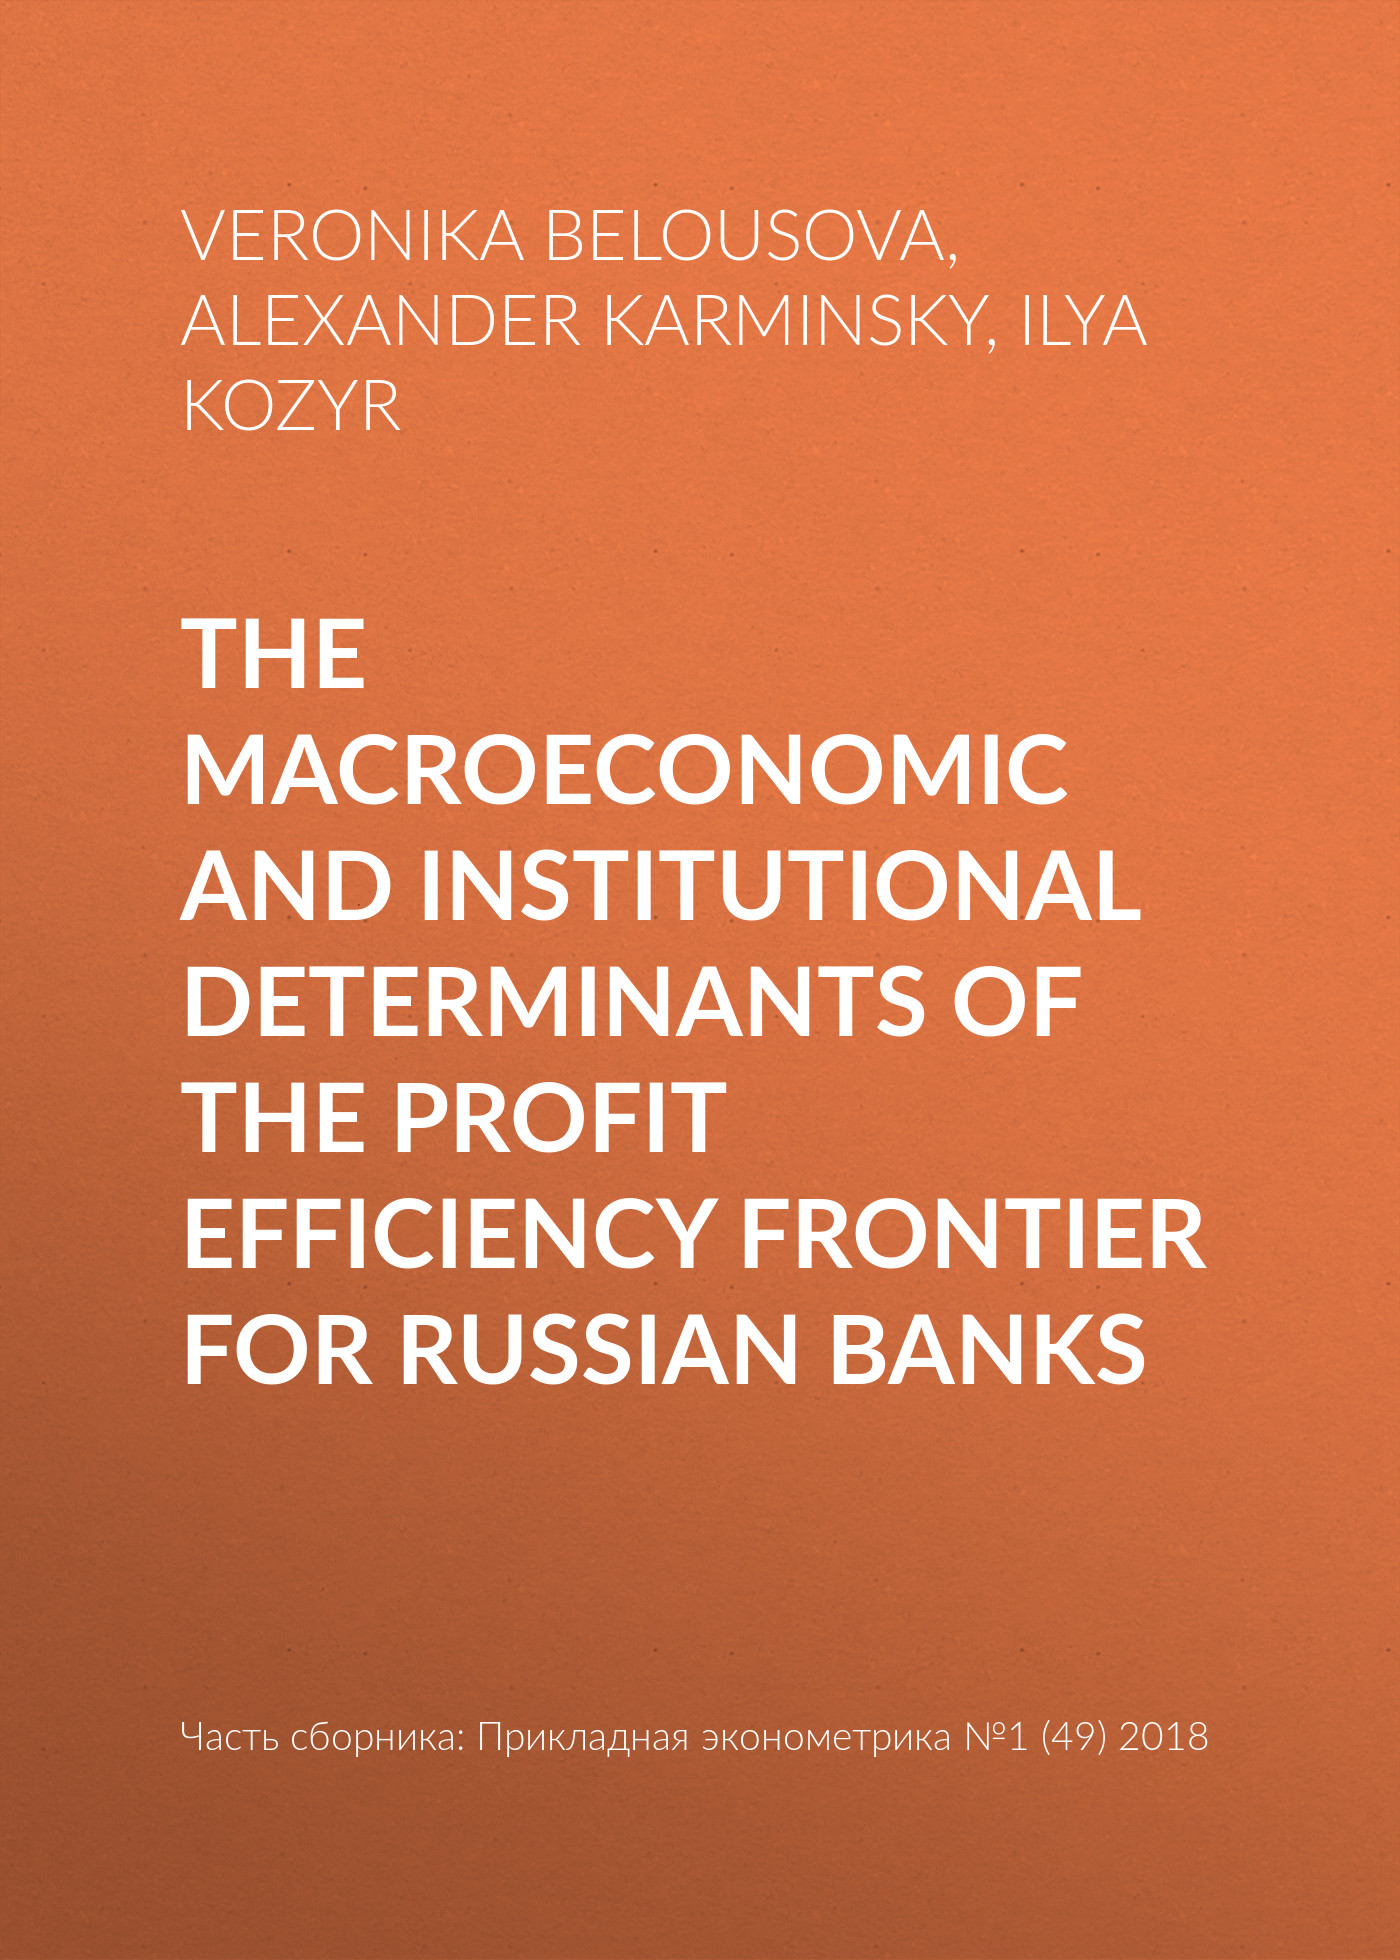 Veronika Belousova The macroeconomic and institutional determinants of the profit efficiency frontier for Russian banks щетка для посуды мфк профит божьи коровки цвет красный 17 5 x 7 x 5 см